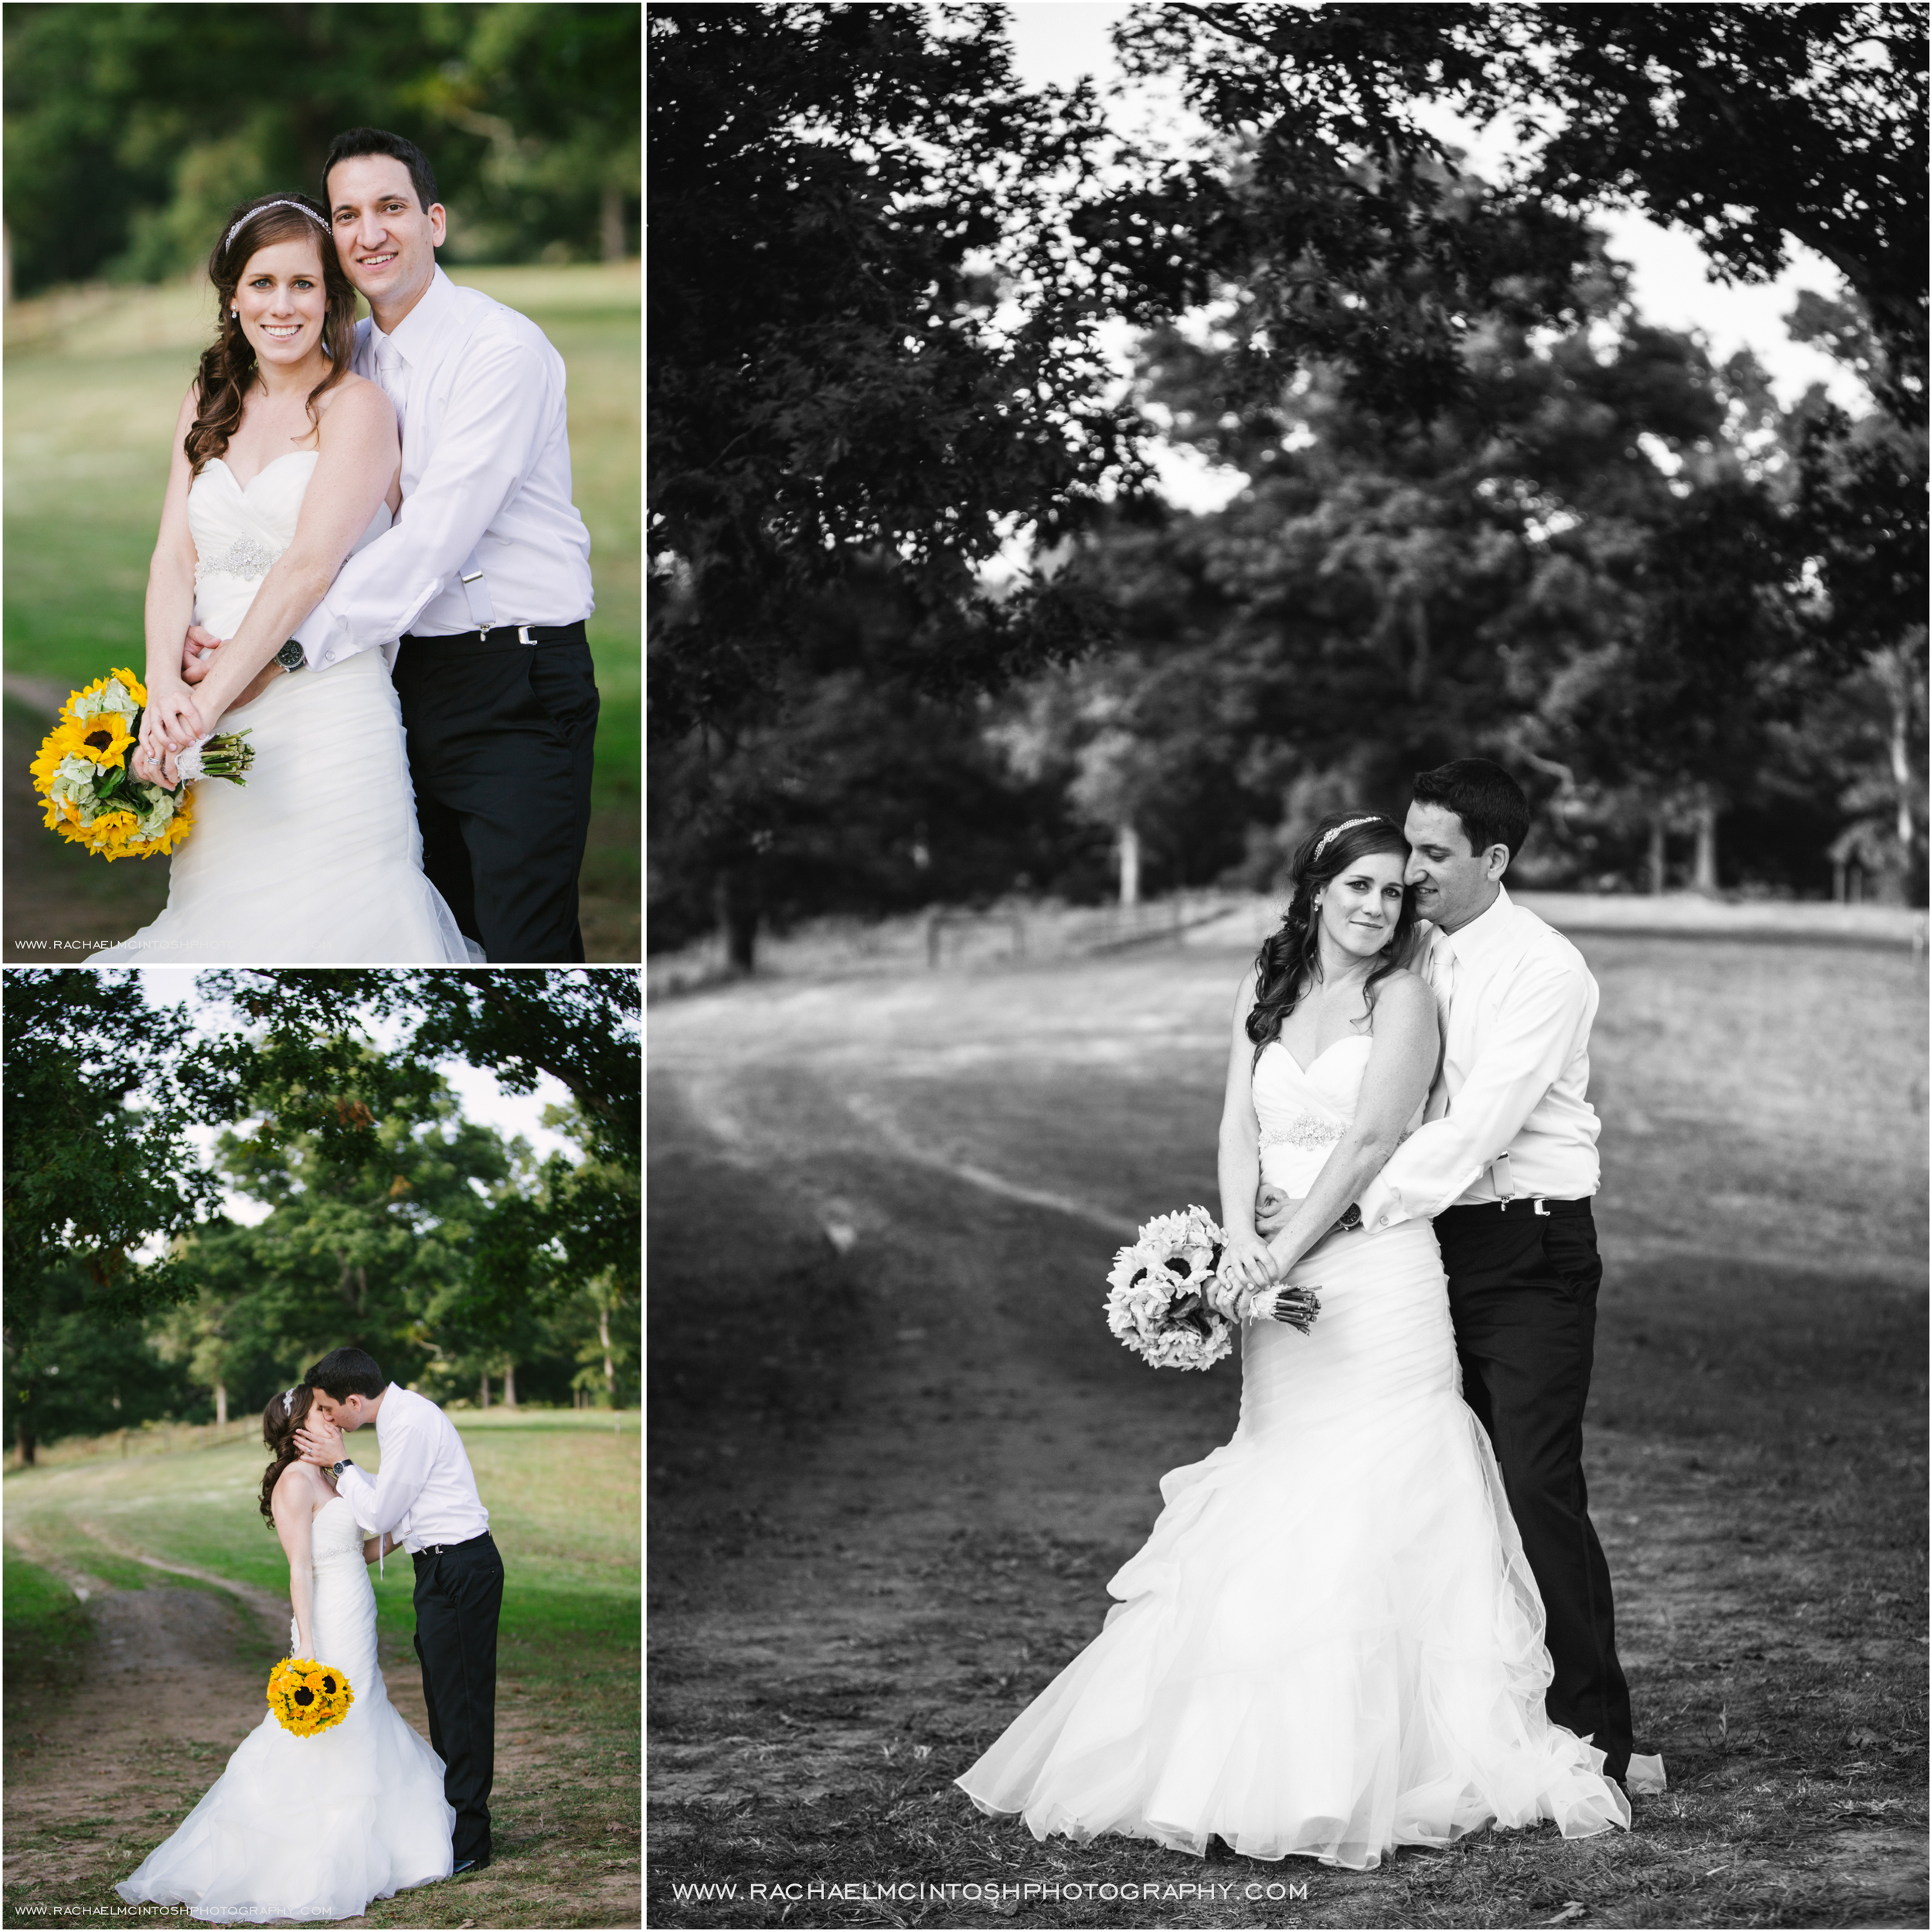 Asheville Wedding Photographer-Crest Center Wedding-Erin & Brian's Biltmore Wedding 50.jpg